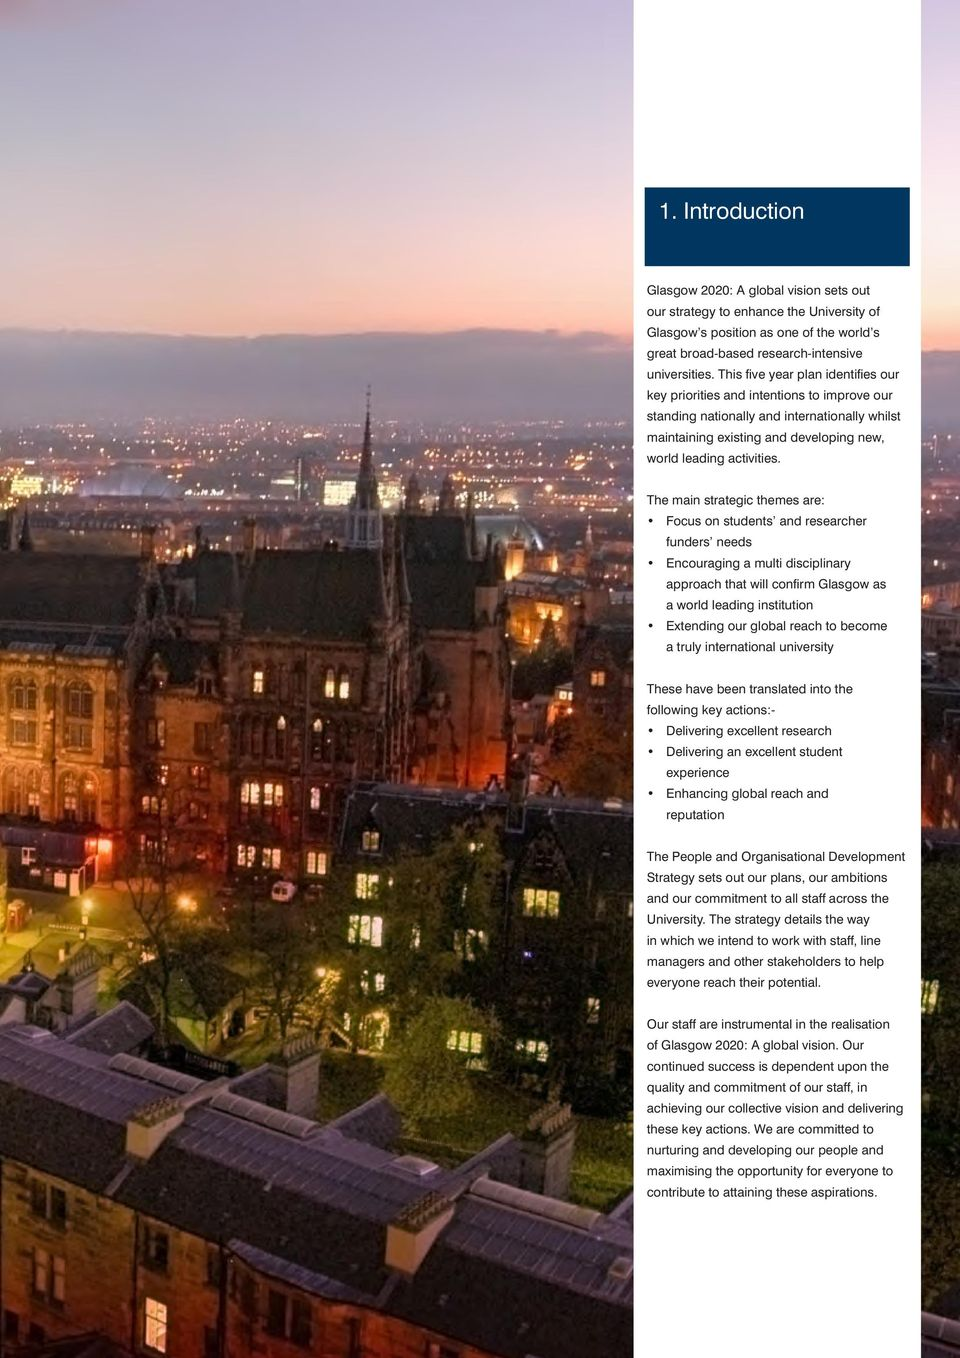 The main strategic themes are: Focus on students and researcher funders needs Encouraging a multi disciplinary approach that will confirm Glasgow as a world leading institution Extending our global